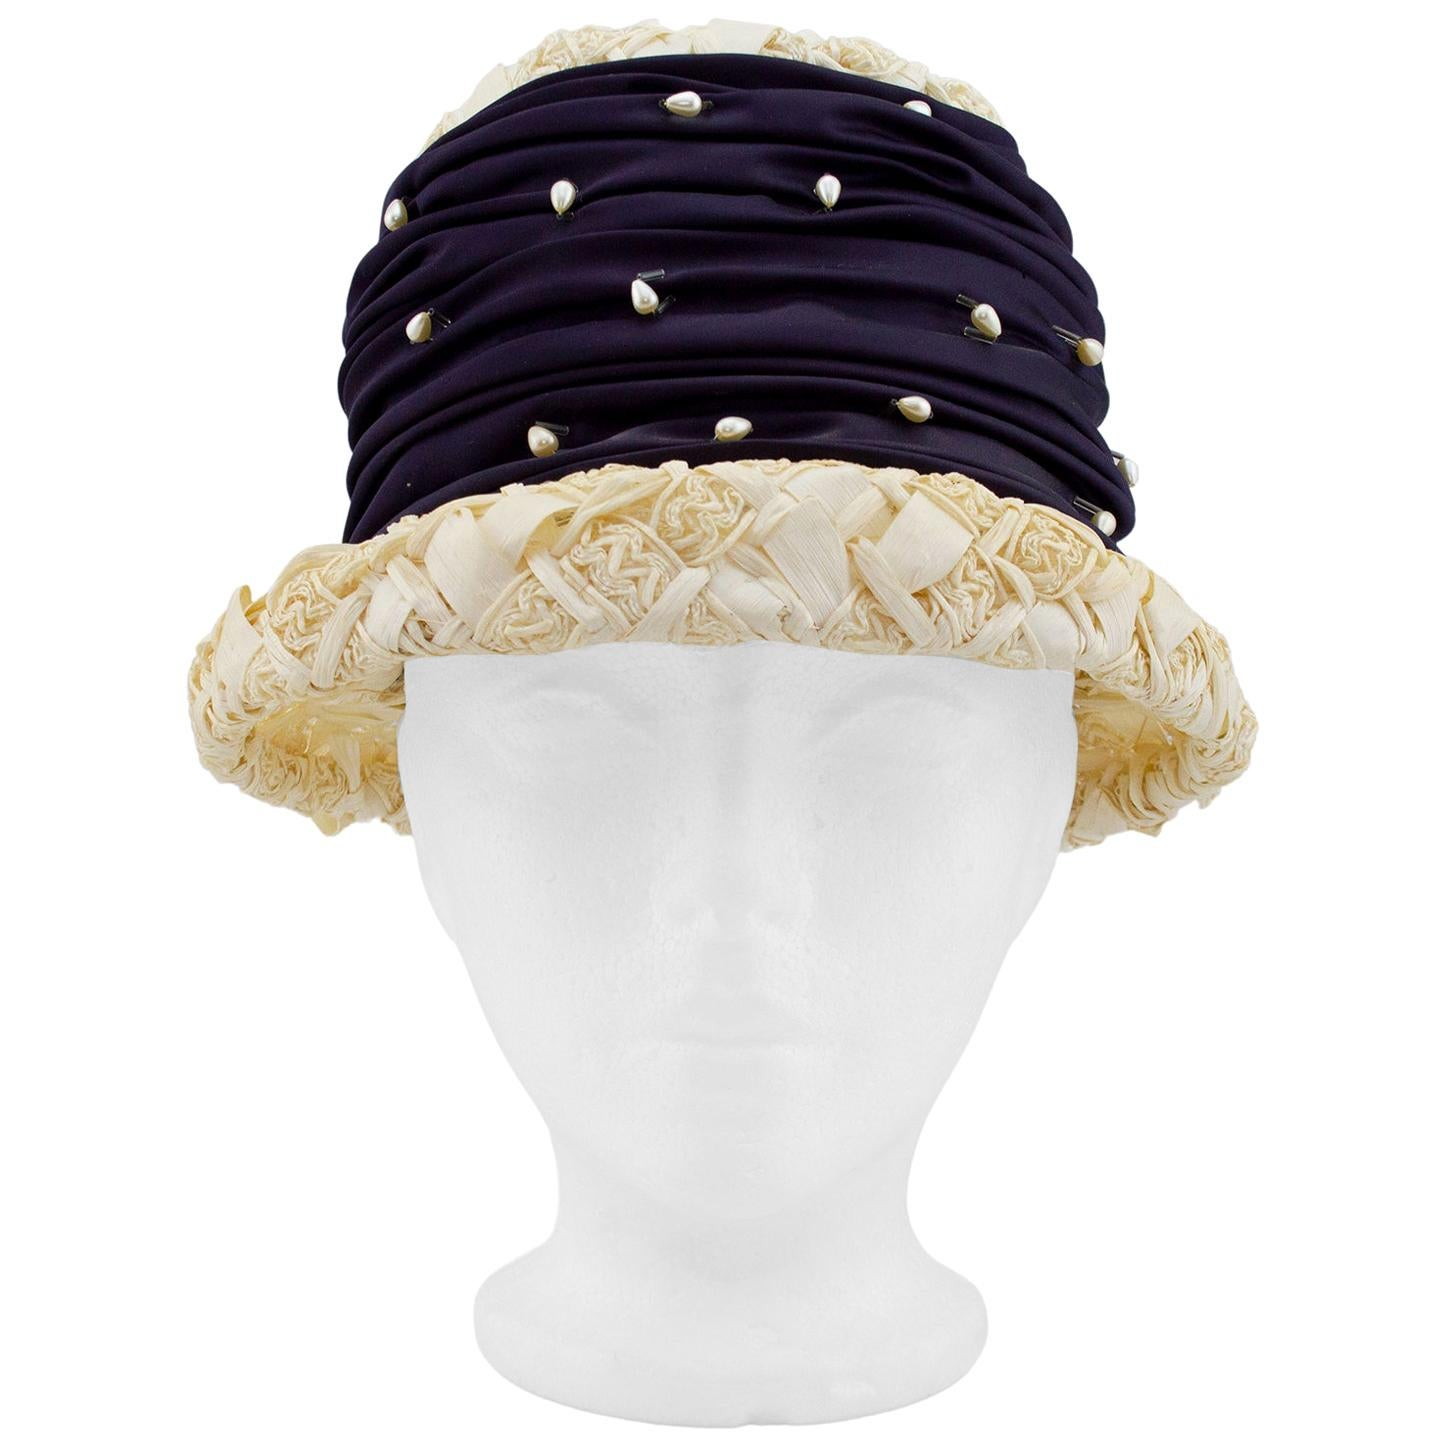 1950s Straw, Satin and Pearl Hat